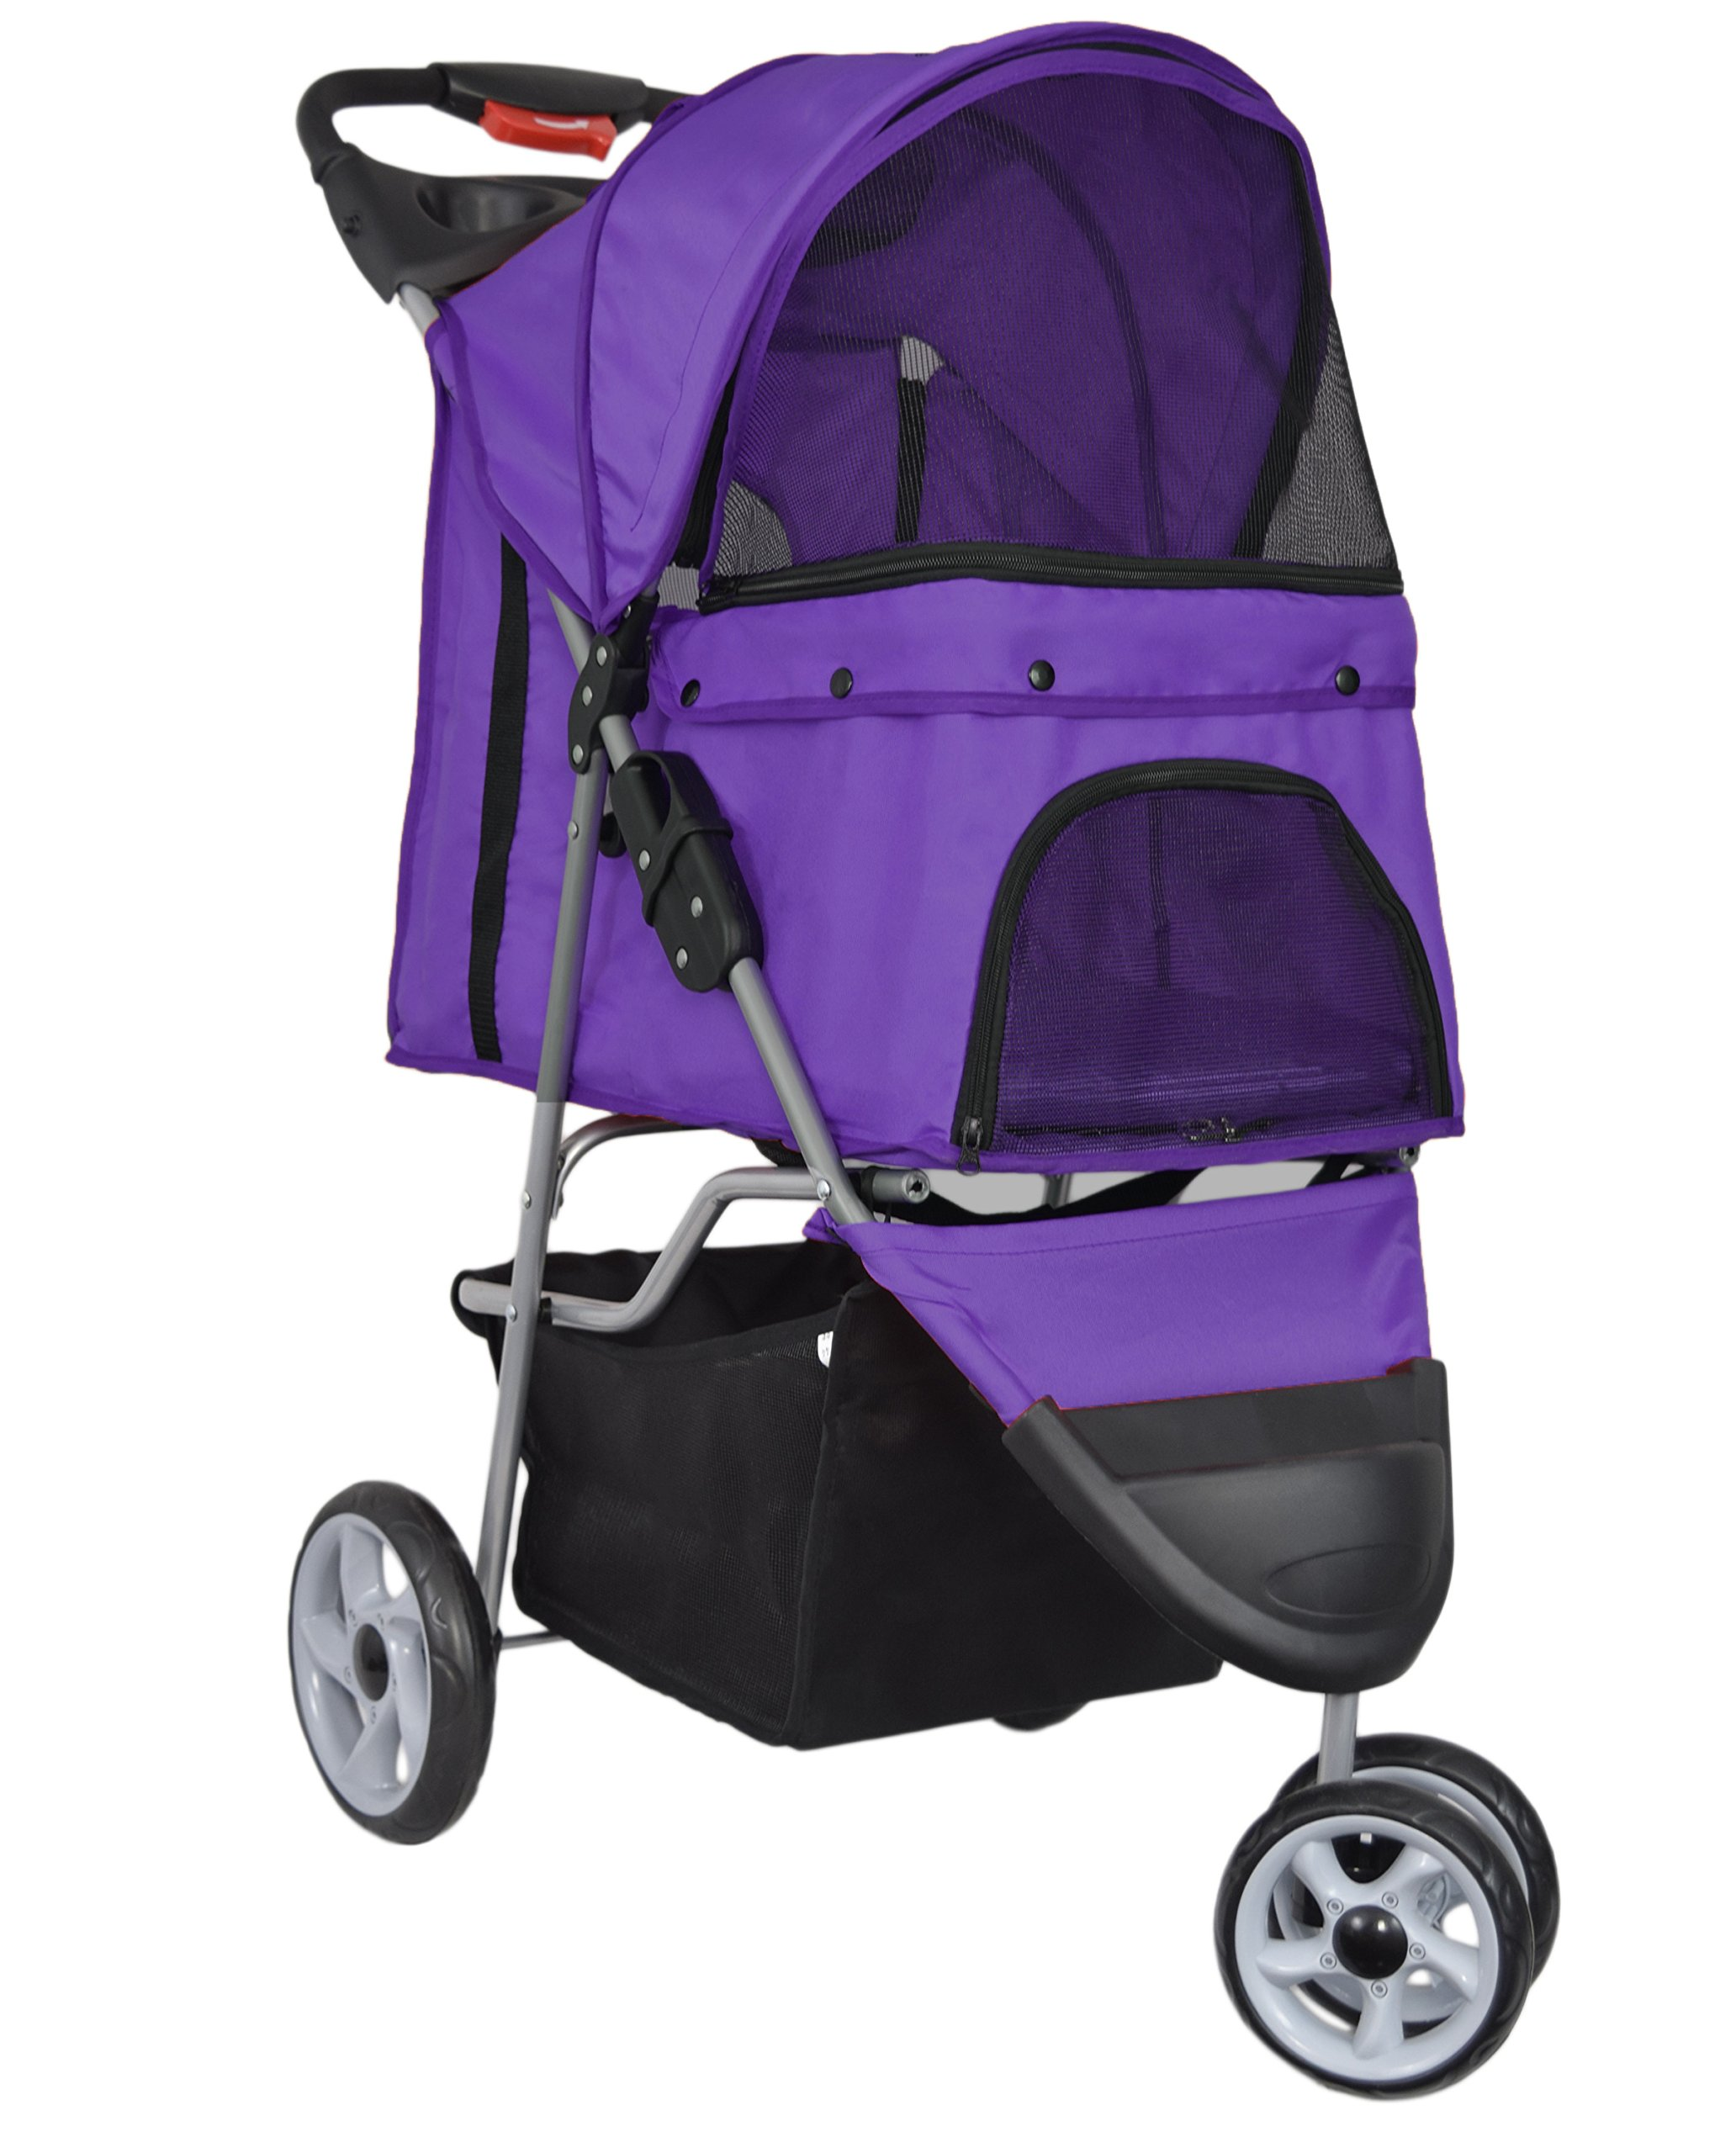 VIVO Three Wheel Pet Stroller, for Cat, Dog and More, Foldable Carrier Strolling Cart, Multiple Colors (Purple)